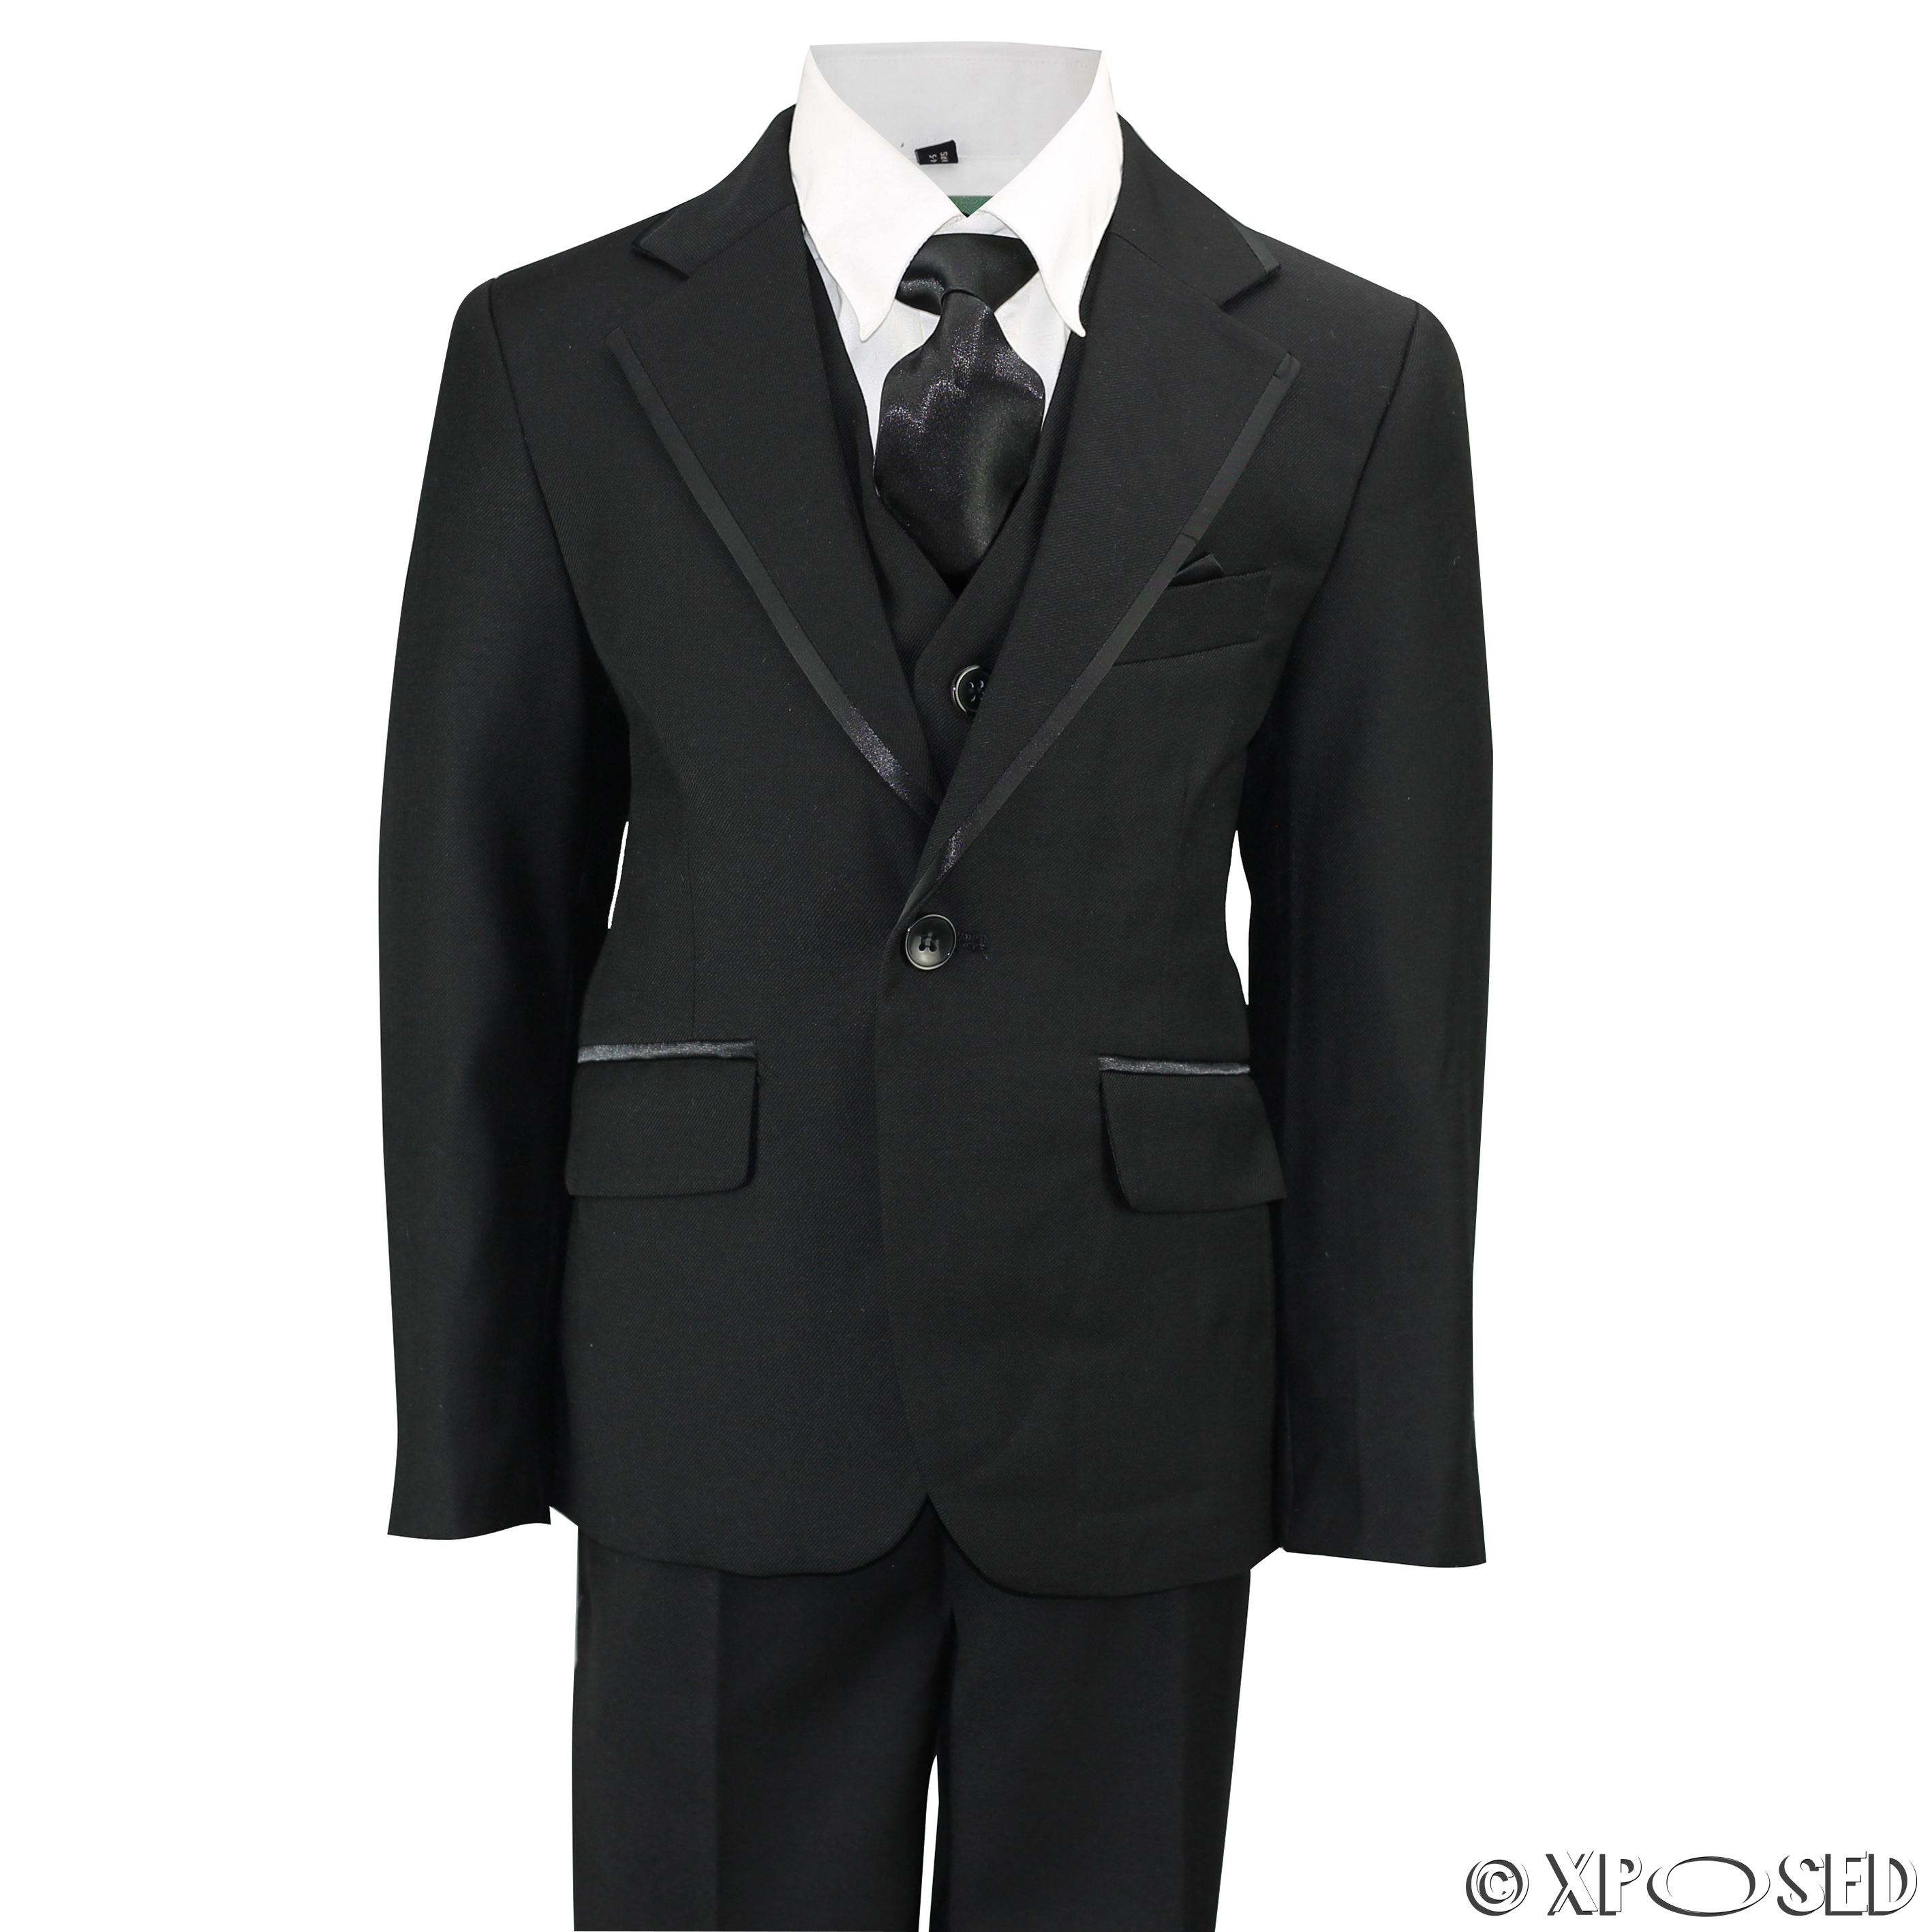 Find the perfect formal wear for your special event including 4 and 5 piece suit sashimicraft.gal, Home & More · New Events Every Day · Hurry, Limited Inventory · New Deals Every Day57,+ followers on Twitter.